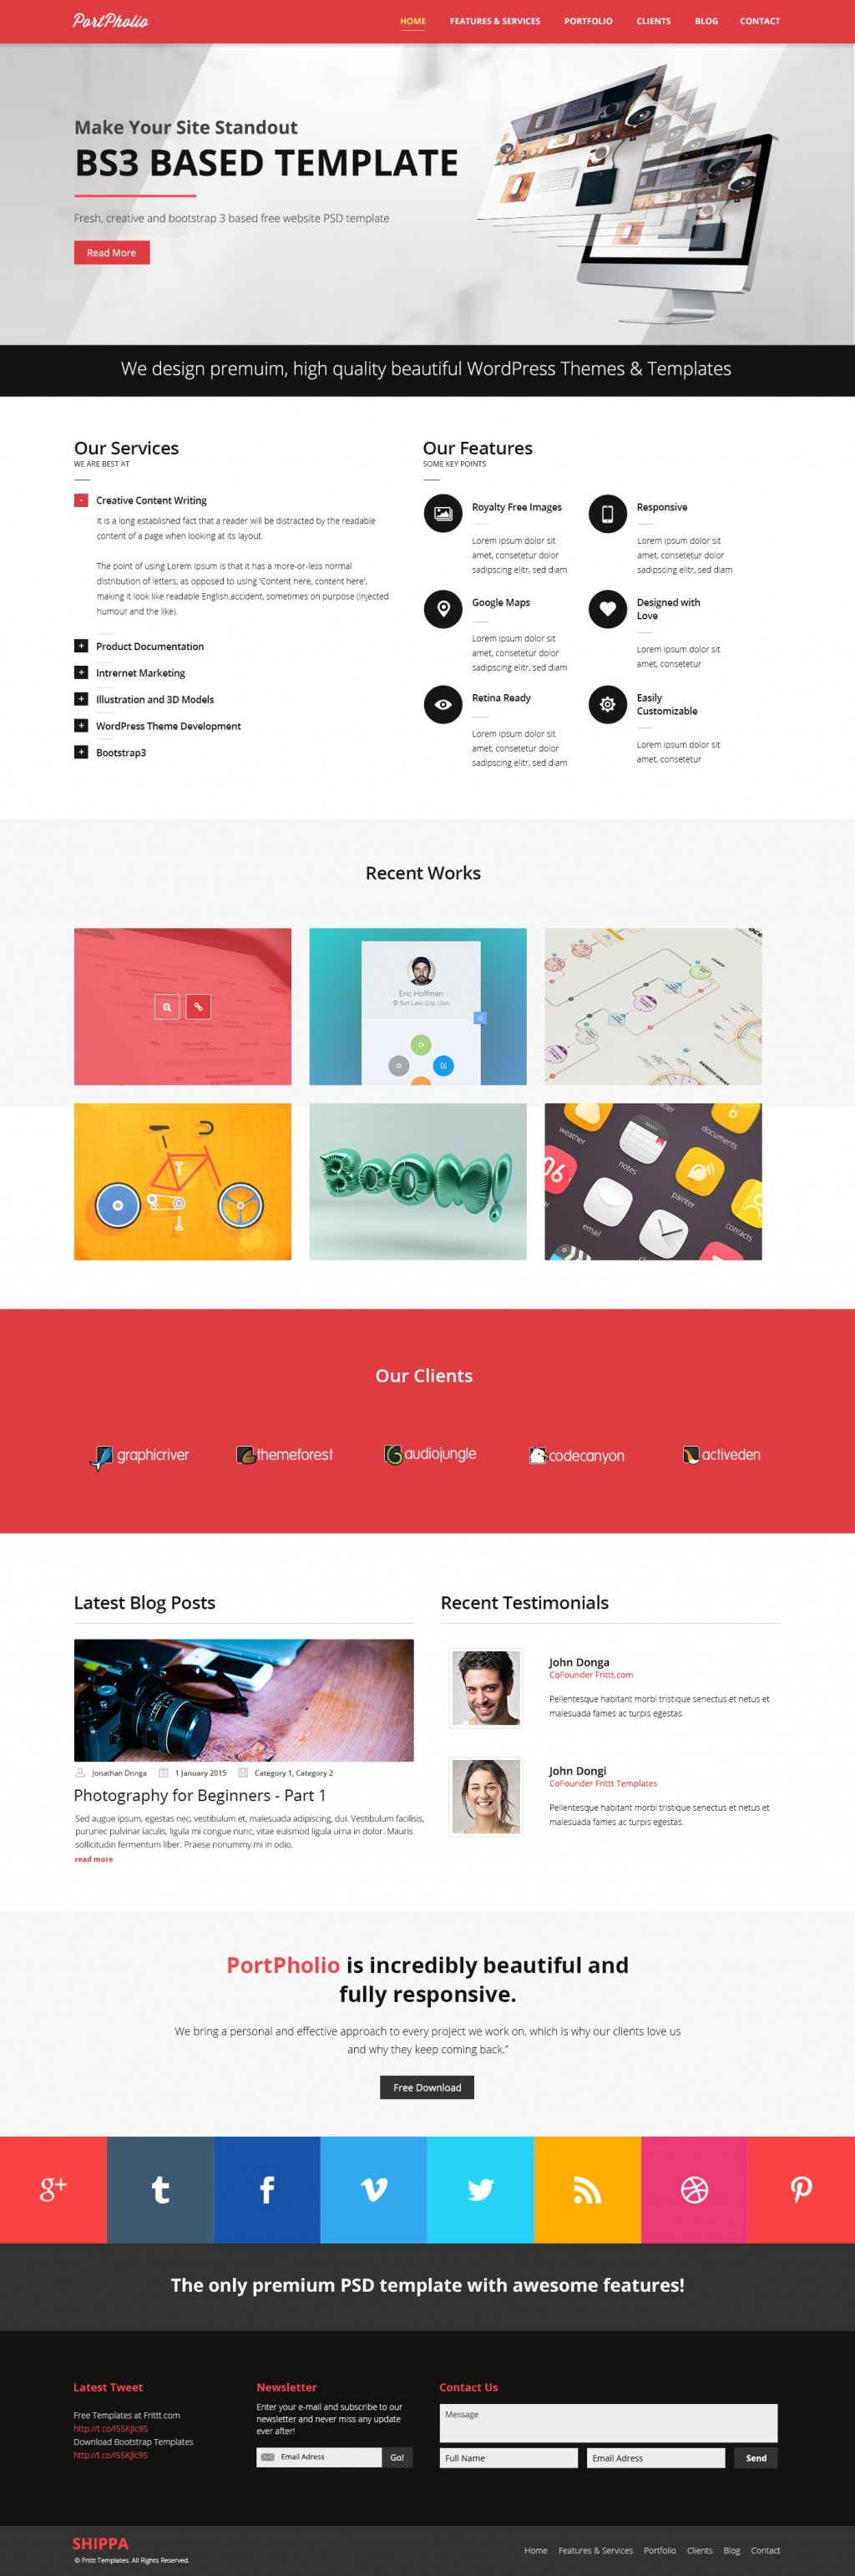 004 Breathtaking Single Page Web Template Inspiration  Templates One Website Free Download Html5 BootstrapLarge